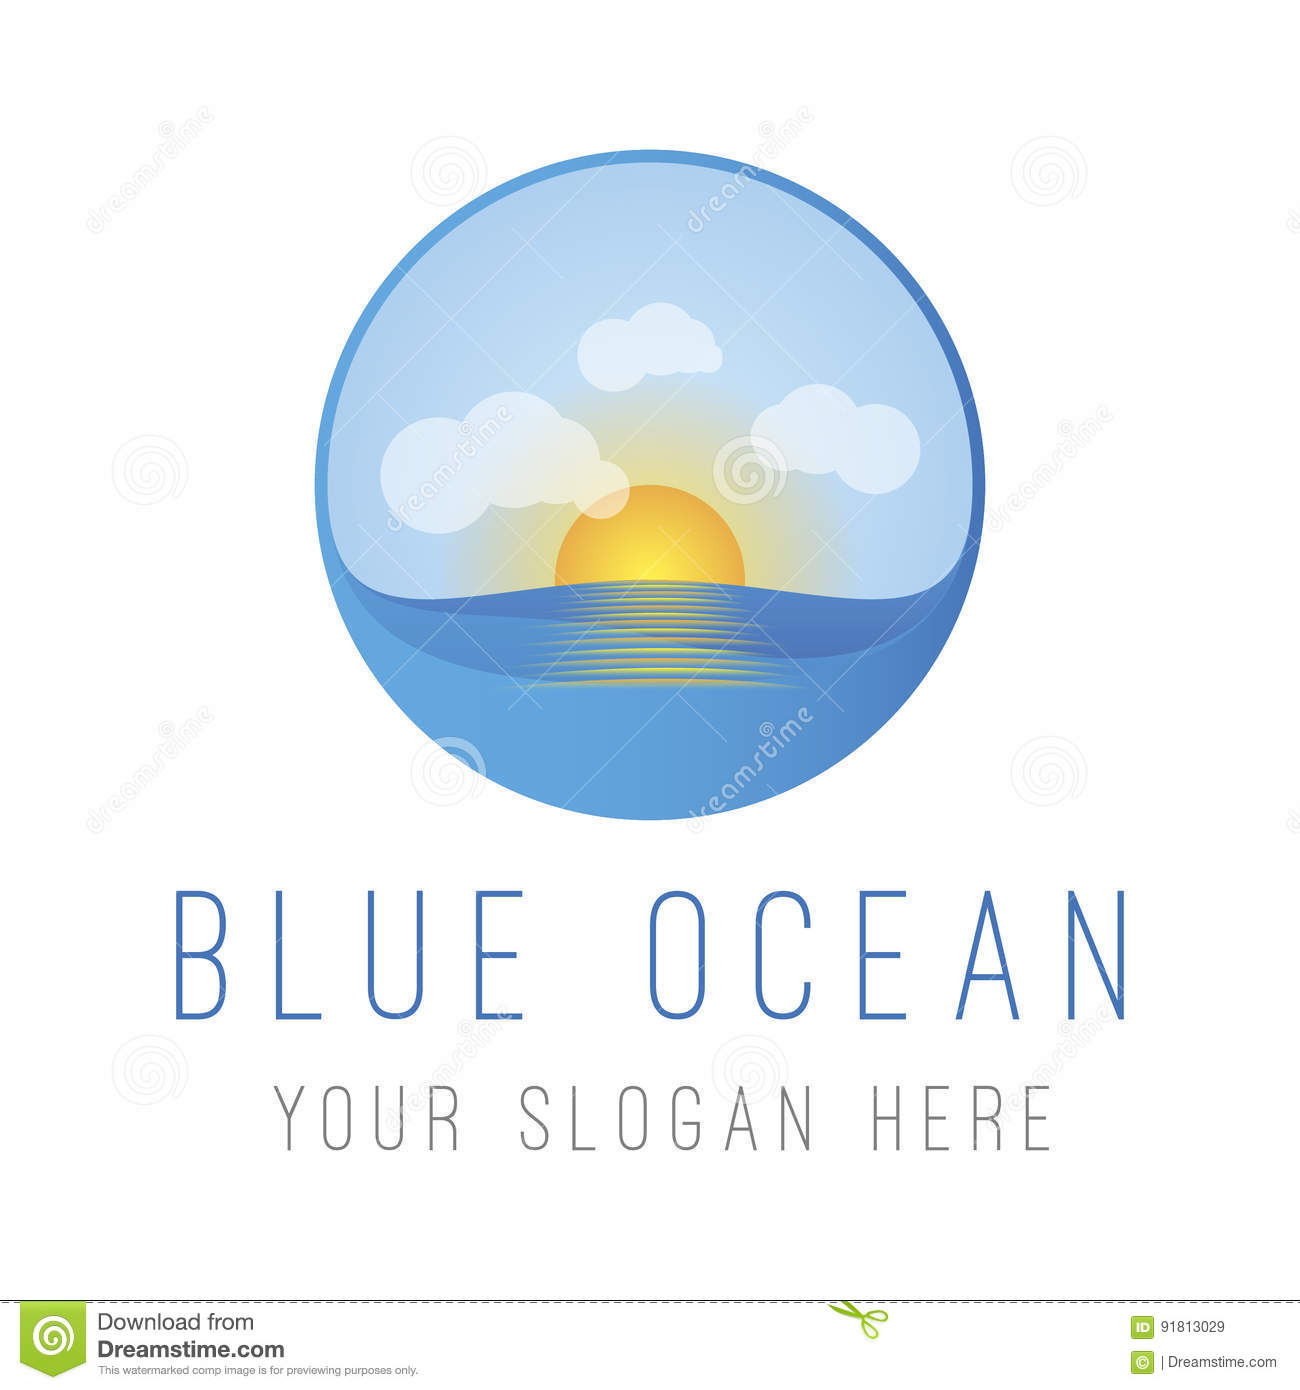 Blue Ocean With Sun Stock Vector Illustration Of Design 91813029